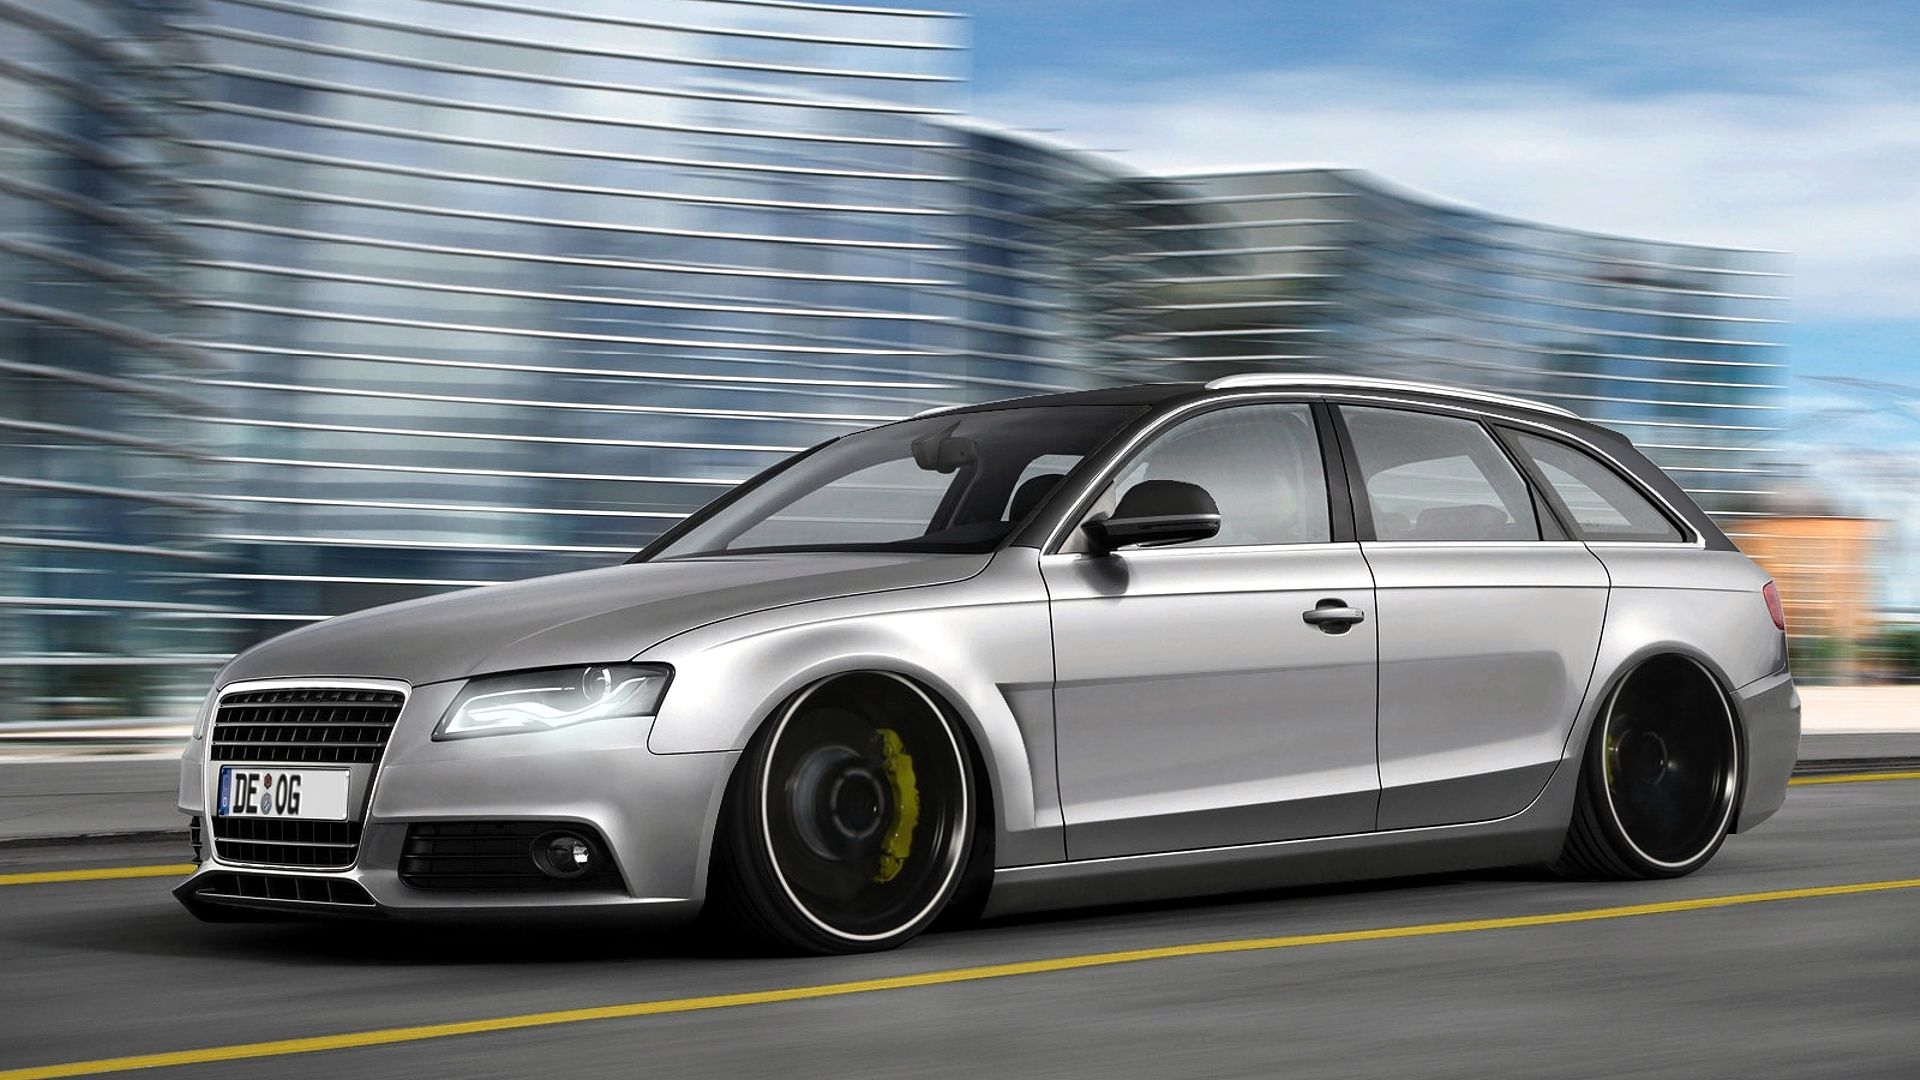 Audi A4 Avant Tuning Low Suspension On Hd Wallpapers From Http Www Hotszots Eu Audi Wallpaperbackgroundsaudi Htm Audi A4 Avant Audi A4 A4 Avant